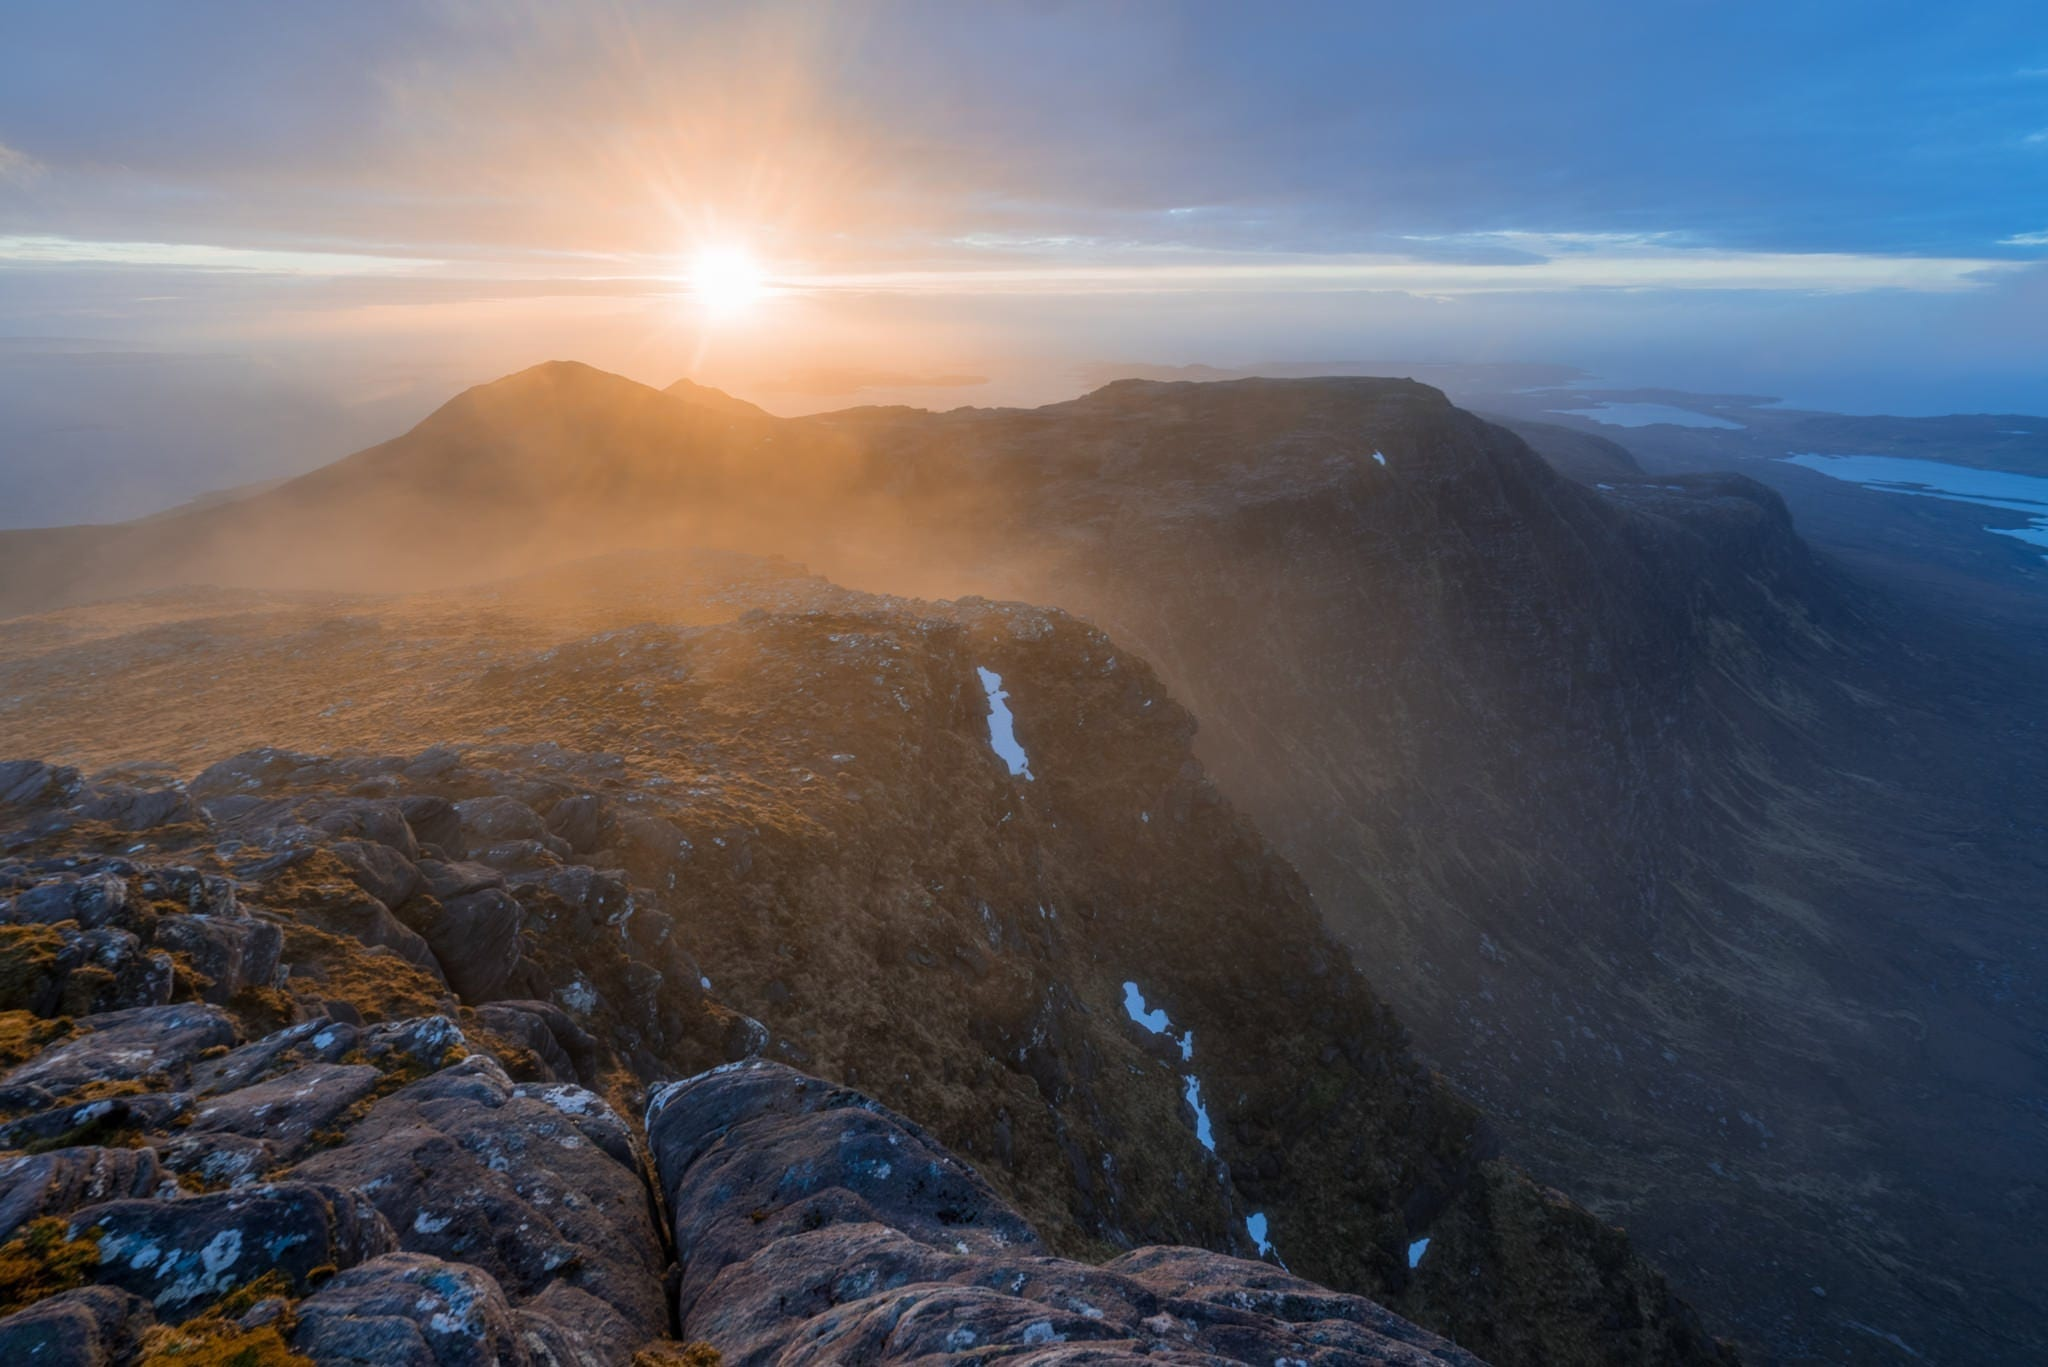 Looking Forward To Summerr - Scotland Landscape Photography Workshops